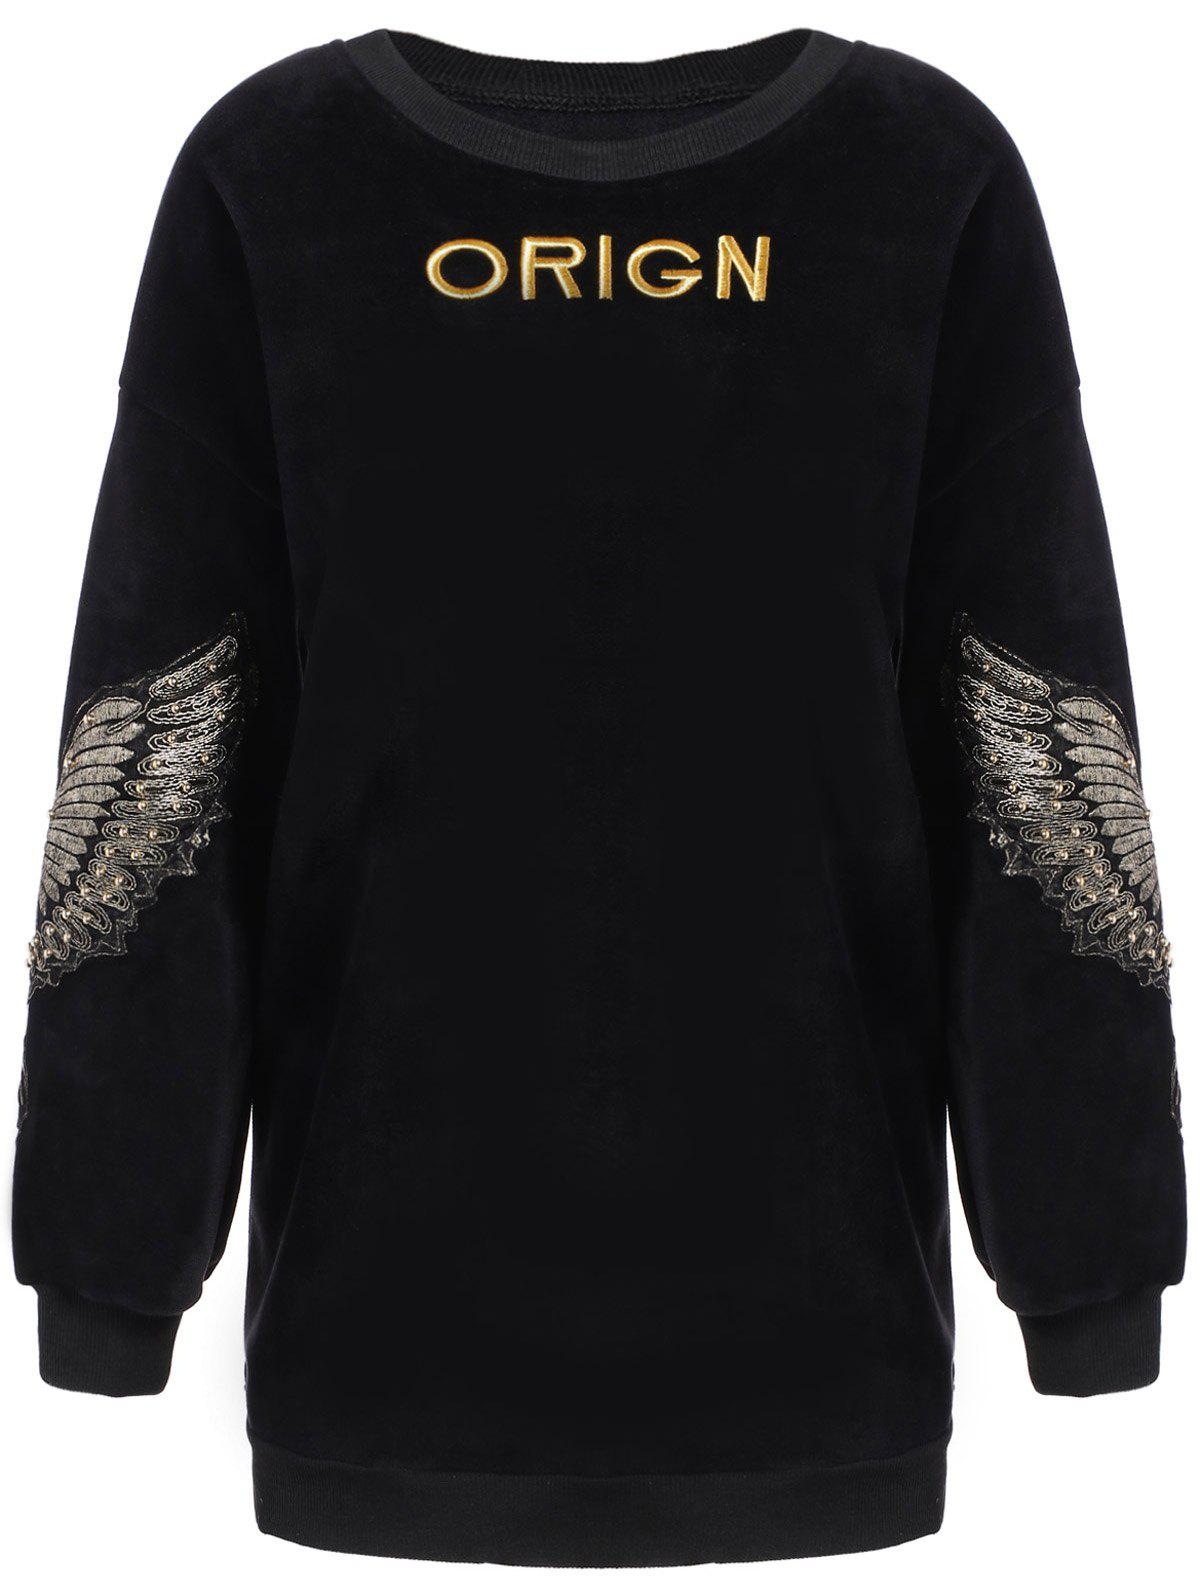 Wing Letter Embroidery Drop Shoulder Sweatshirt - BLACK ONE SIZE(FIT SIZE XS TO M)